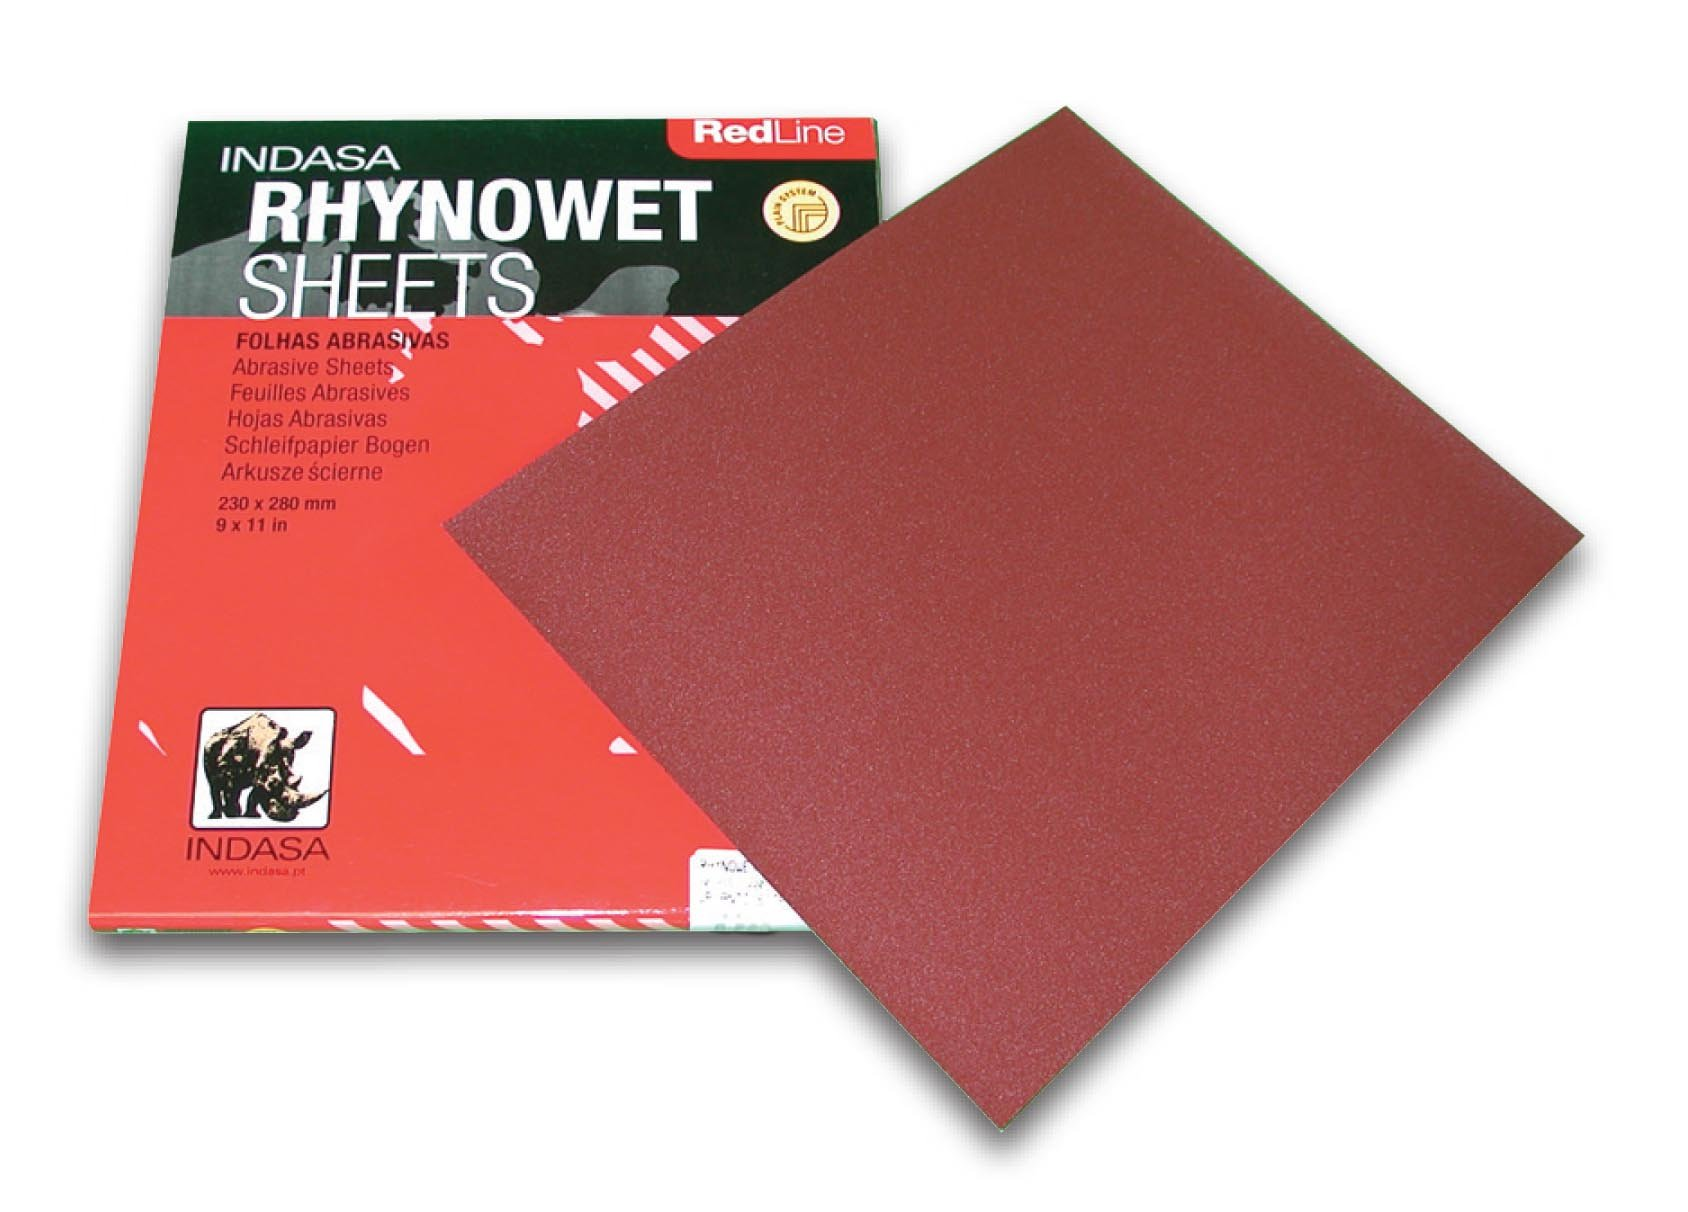 REDLINE XL RHYNOWET SHEETS 9'' X 11'' 220 GRIT 50/box